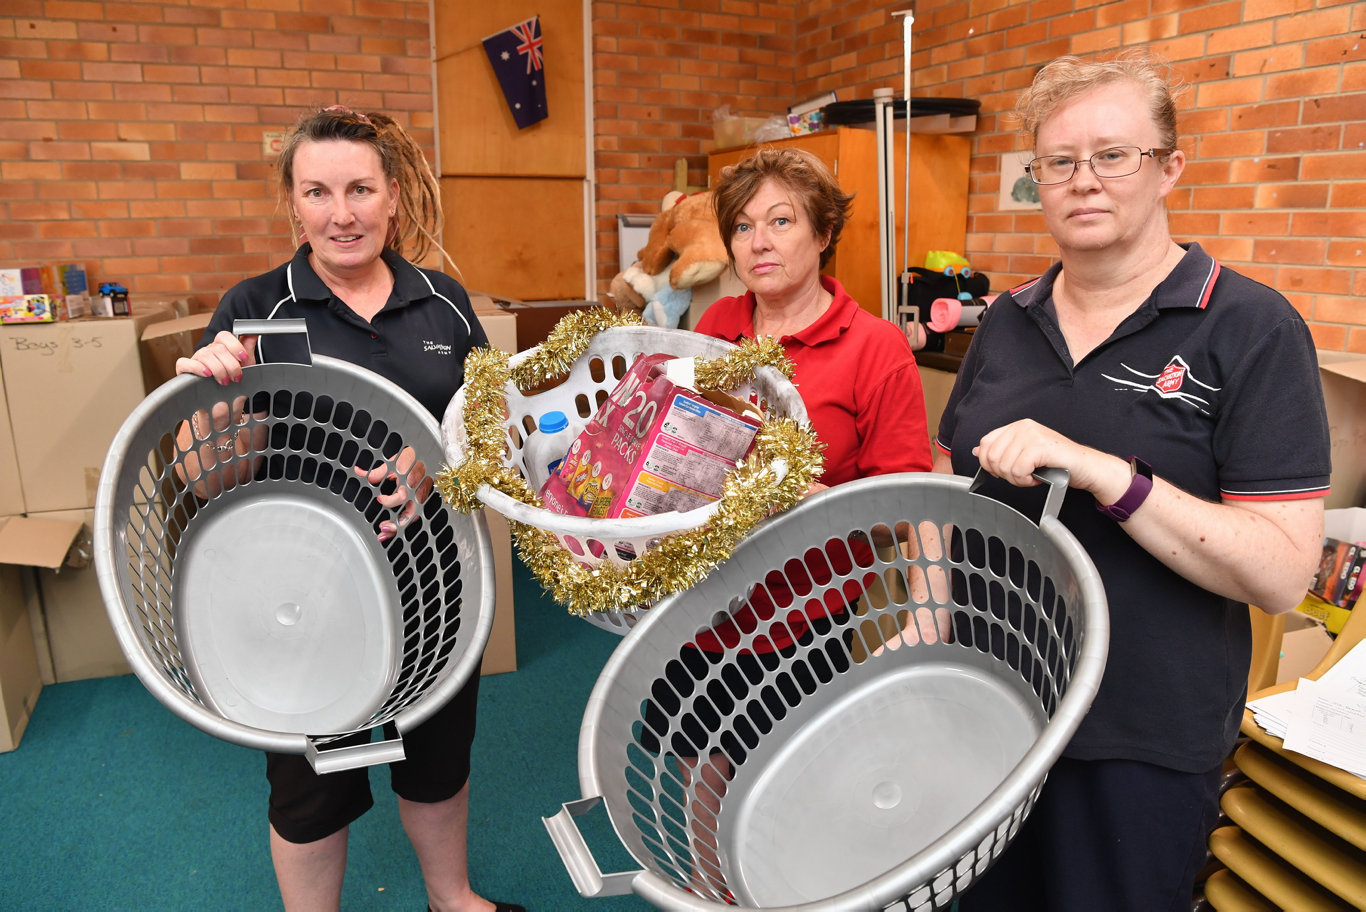 Maryborough Salvation Army had some of its Xmas hamper donations stolen - (L) Deanne Stewart, Cherie Spalding and Cpt Adele Williams with empty baskets.Photo: Alistair Brightman